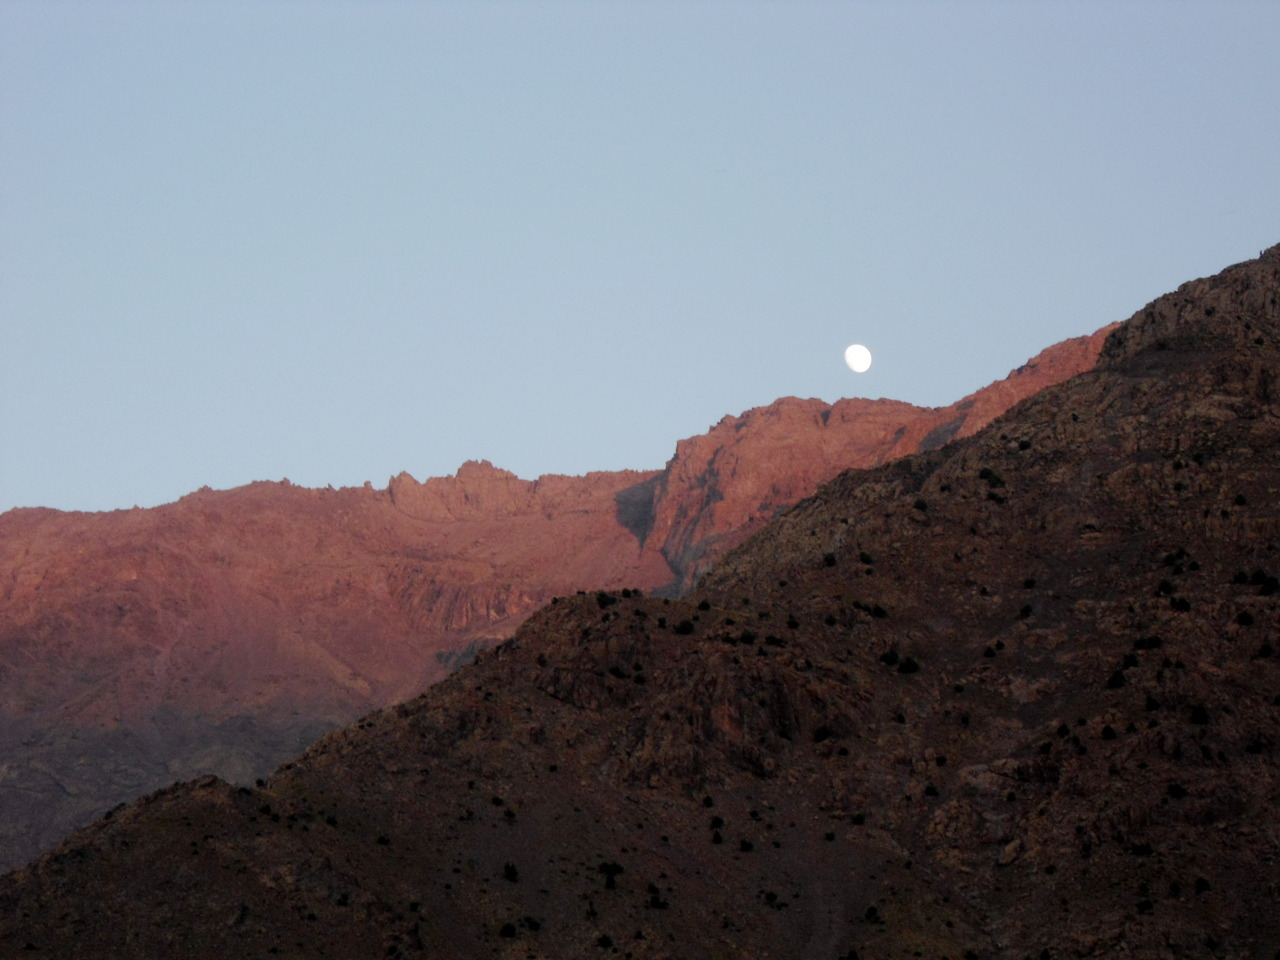 Moon rising over Imlil picture by me, Emilie Futterman